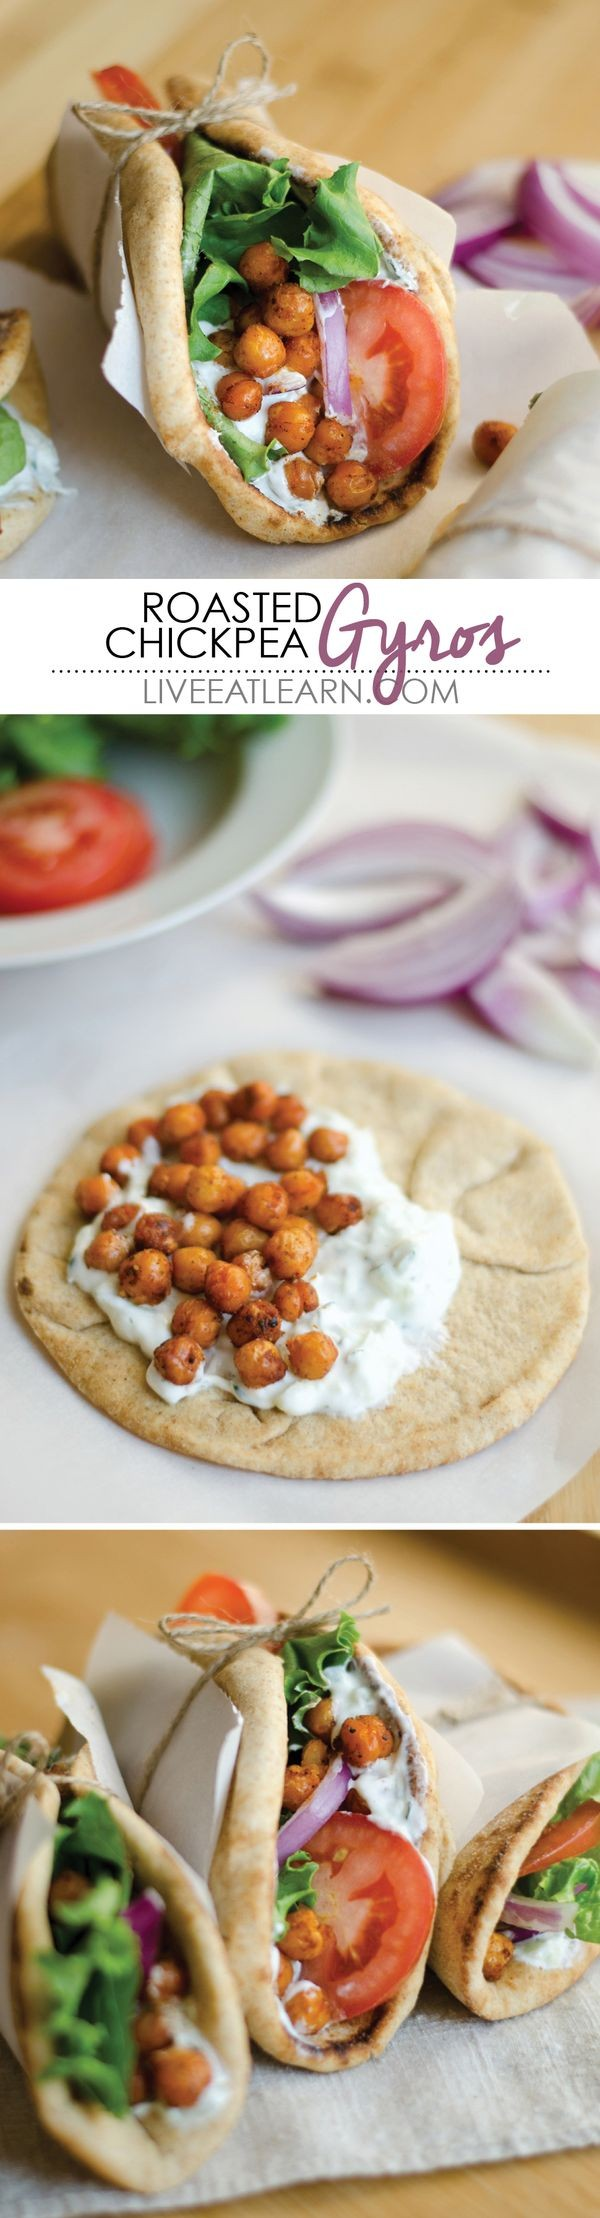 Get the recipe Roasted Chickpea Gyros @recipes_to_go